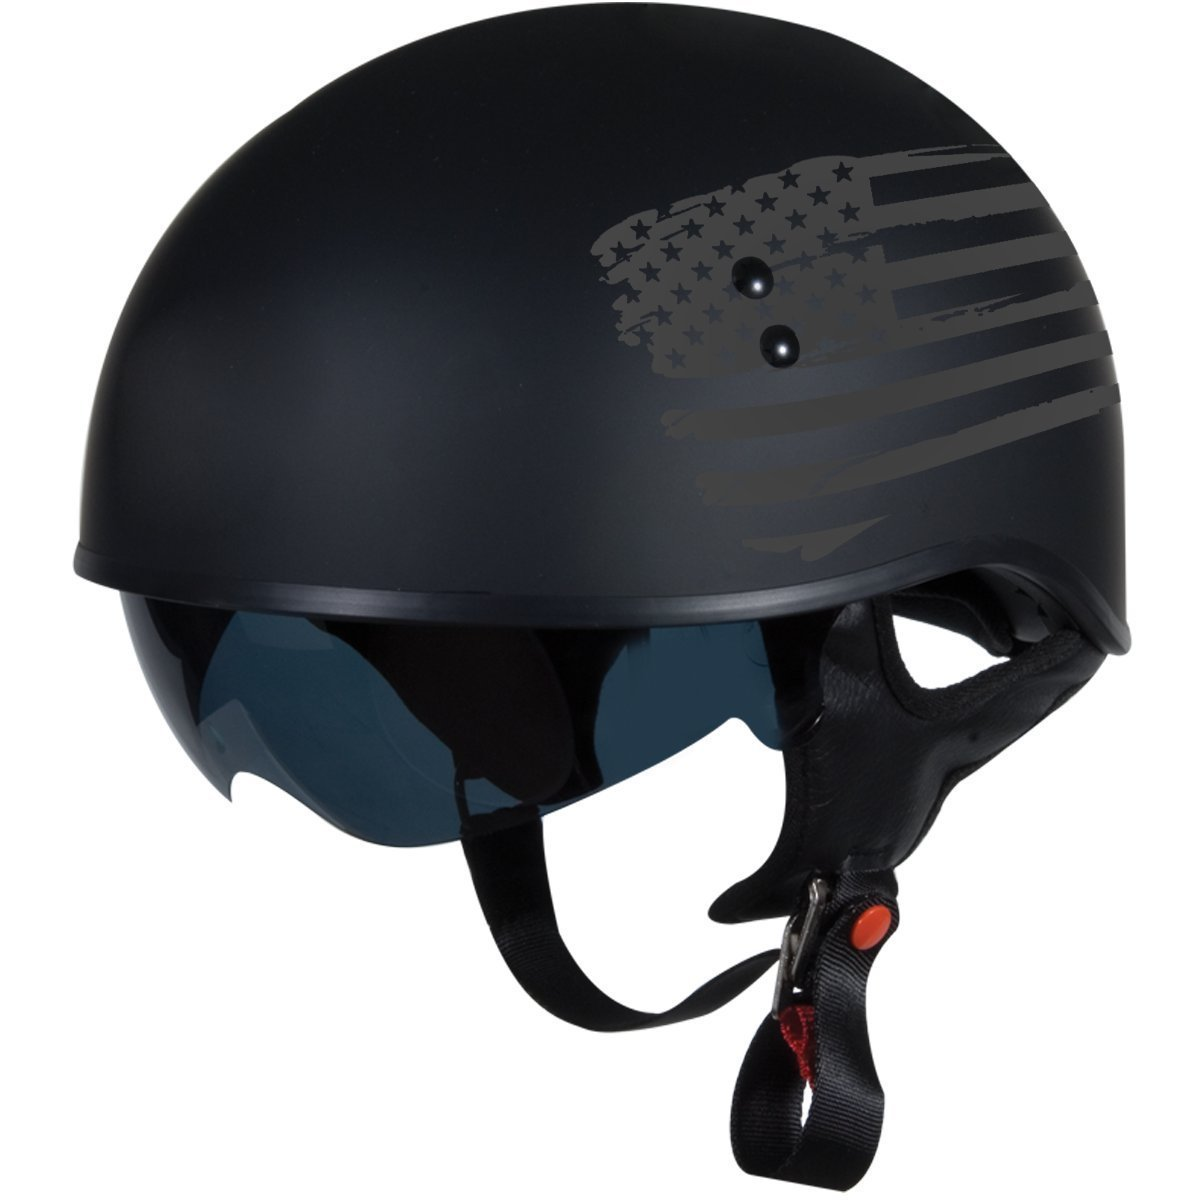 "TORC T55 Spec-Op Half Helmet with 'Flag"" Graphic (Flat Black, Large) by TORC"